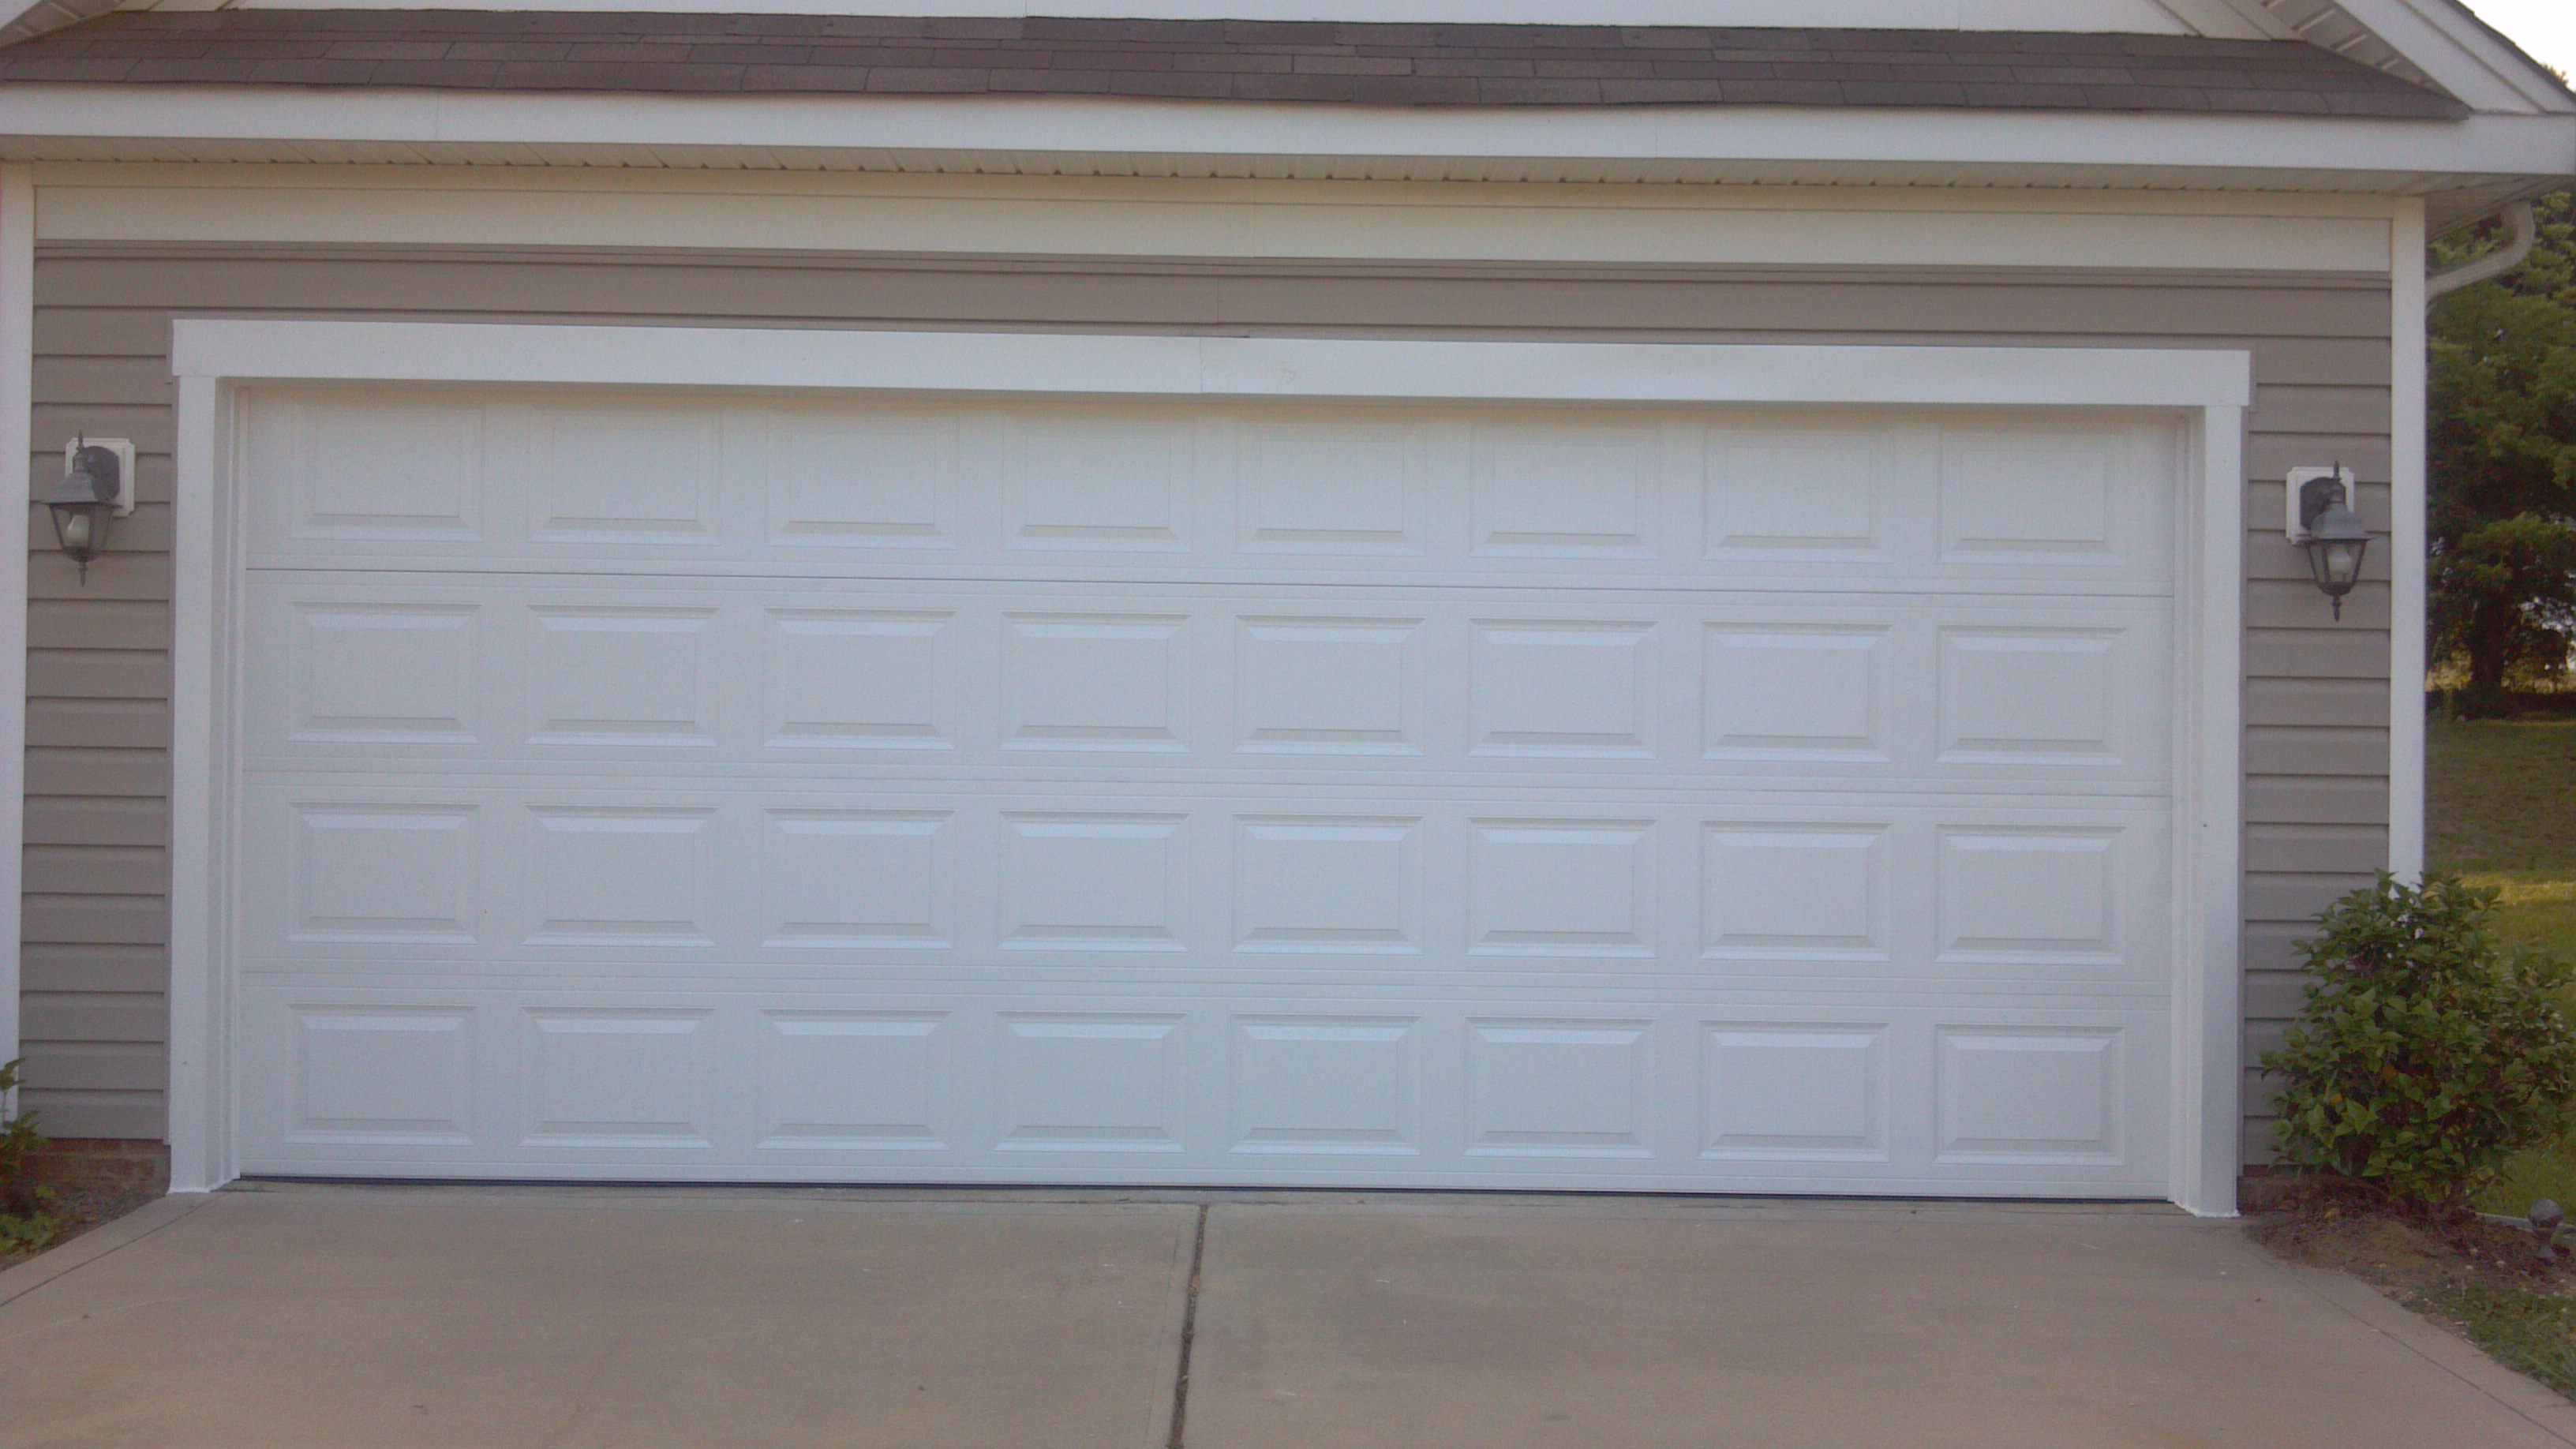 New garage doors jb garage door repair las vegas nv for New garage